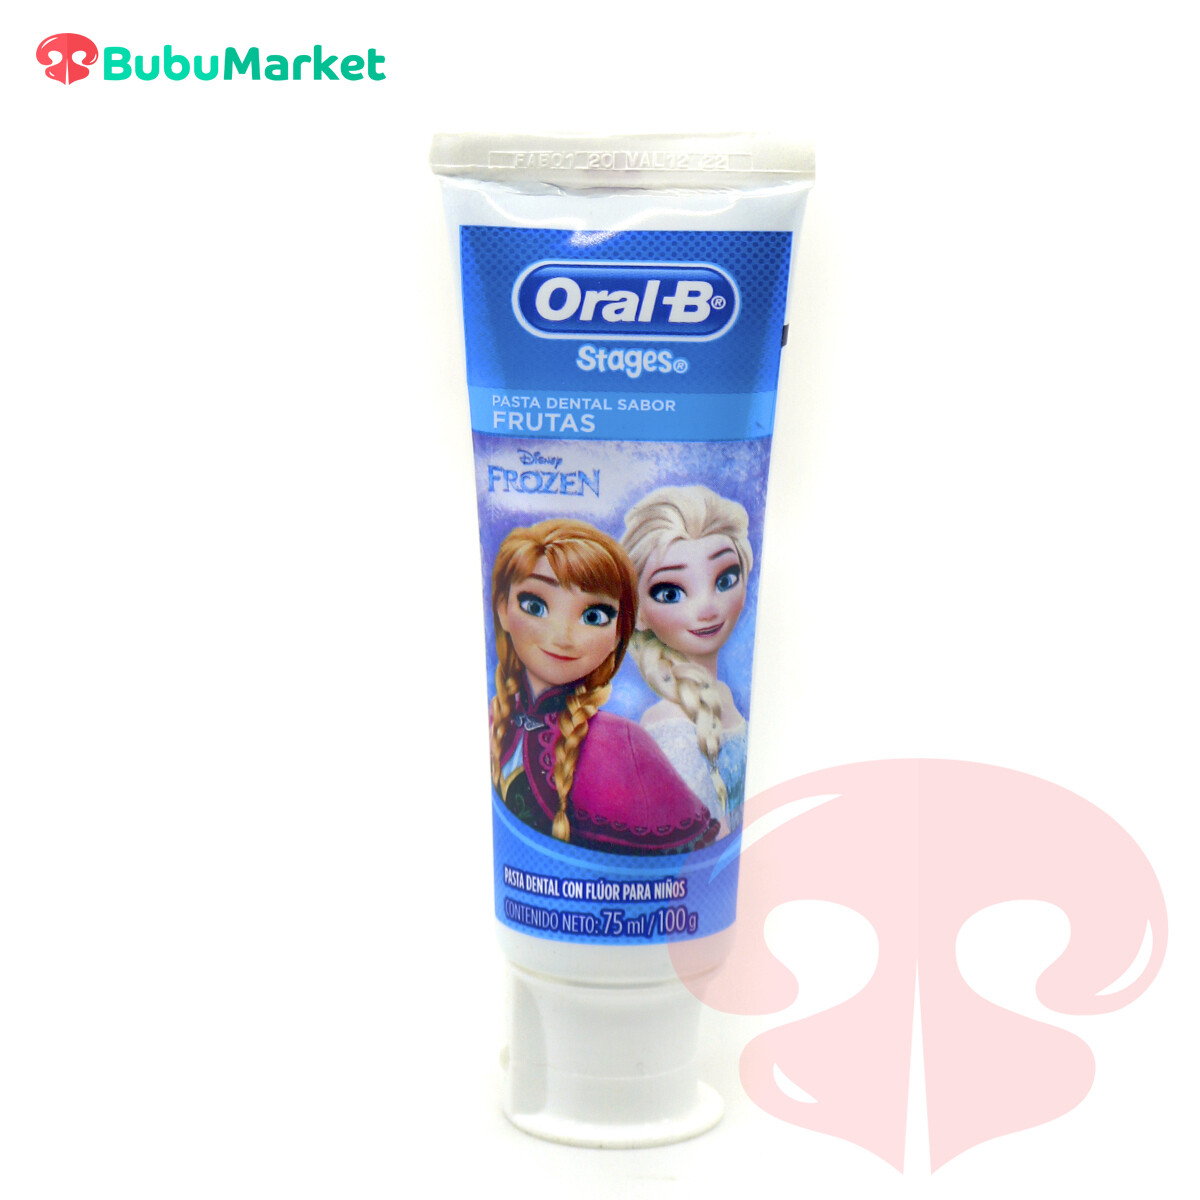 PASTA DENTAL PARA NIÑOS ORAL B STAGES FROZEN DE 75 ML.